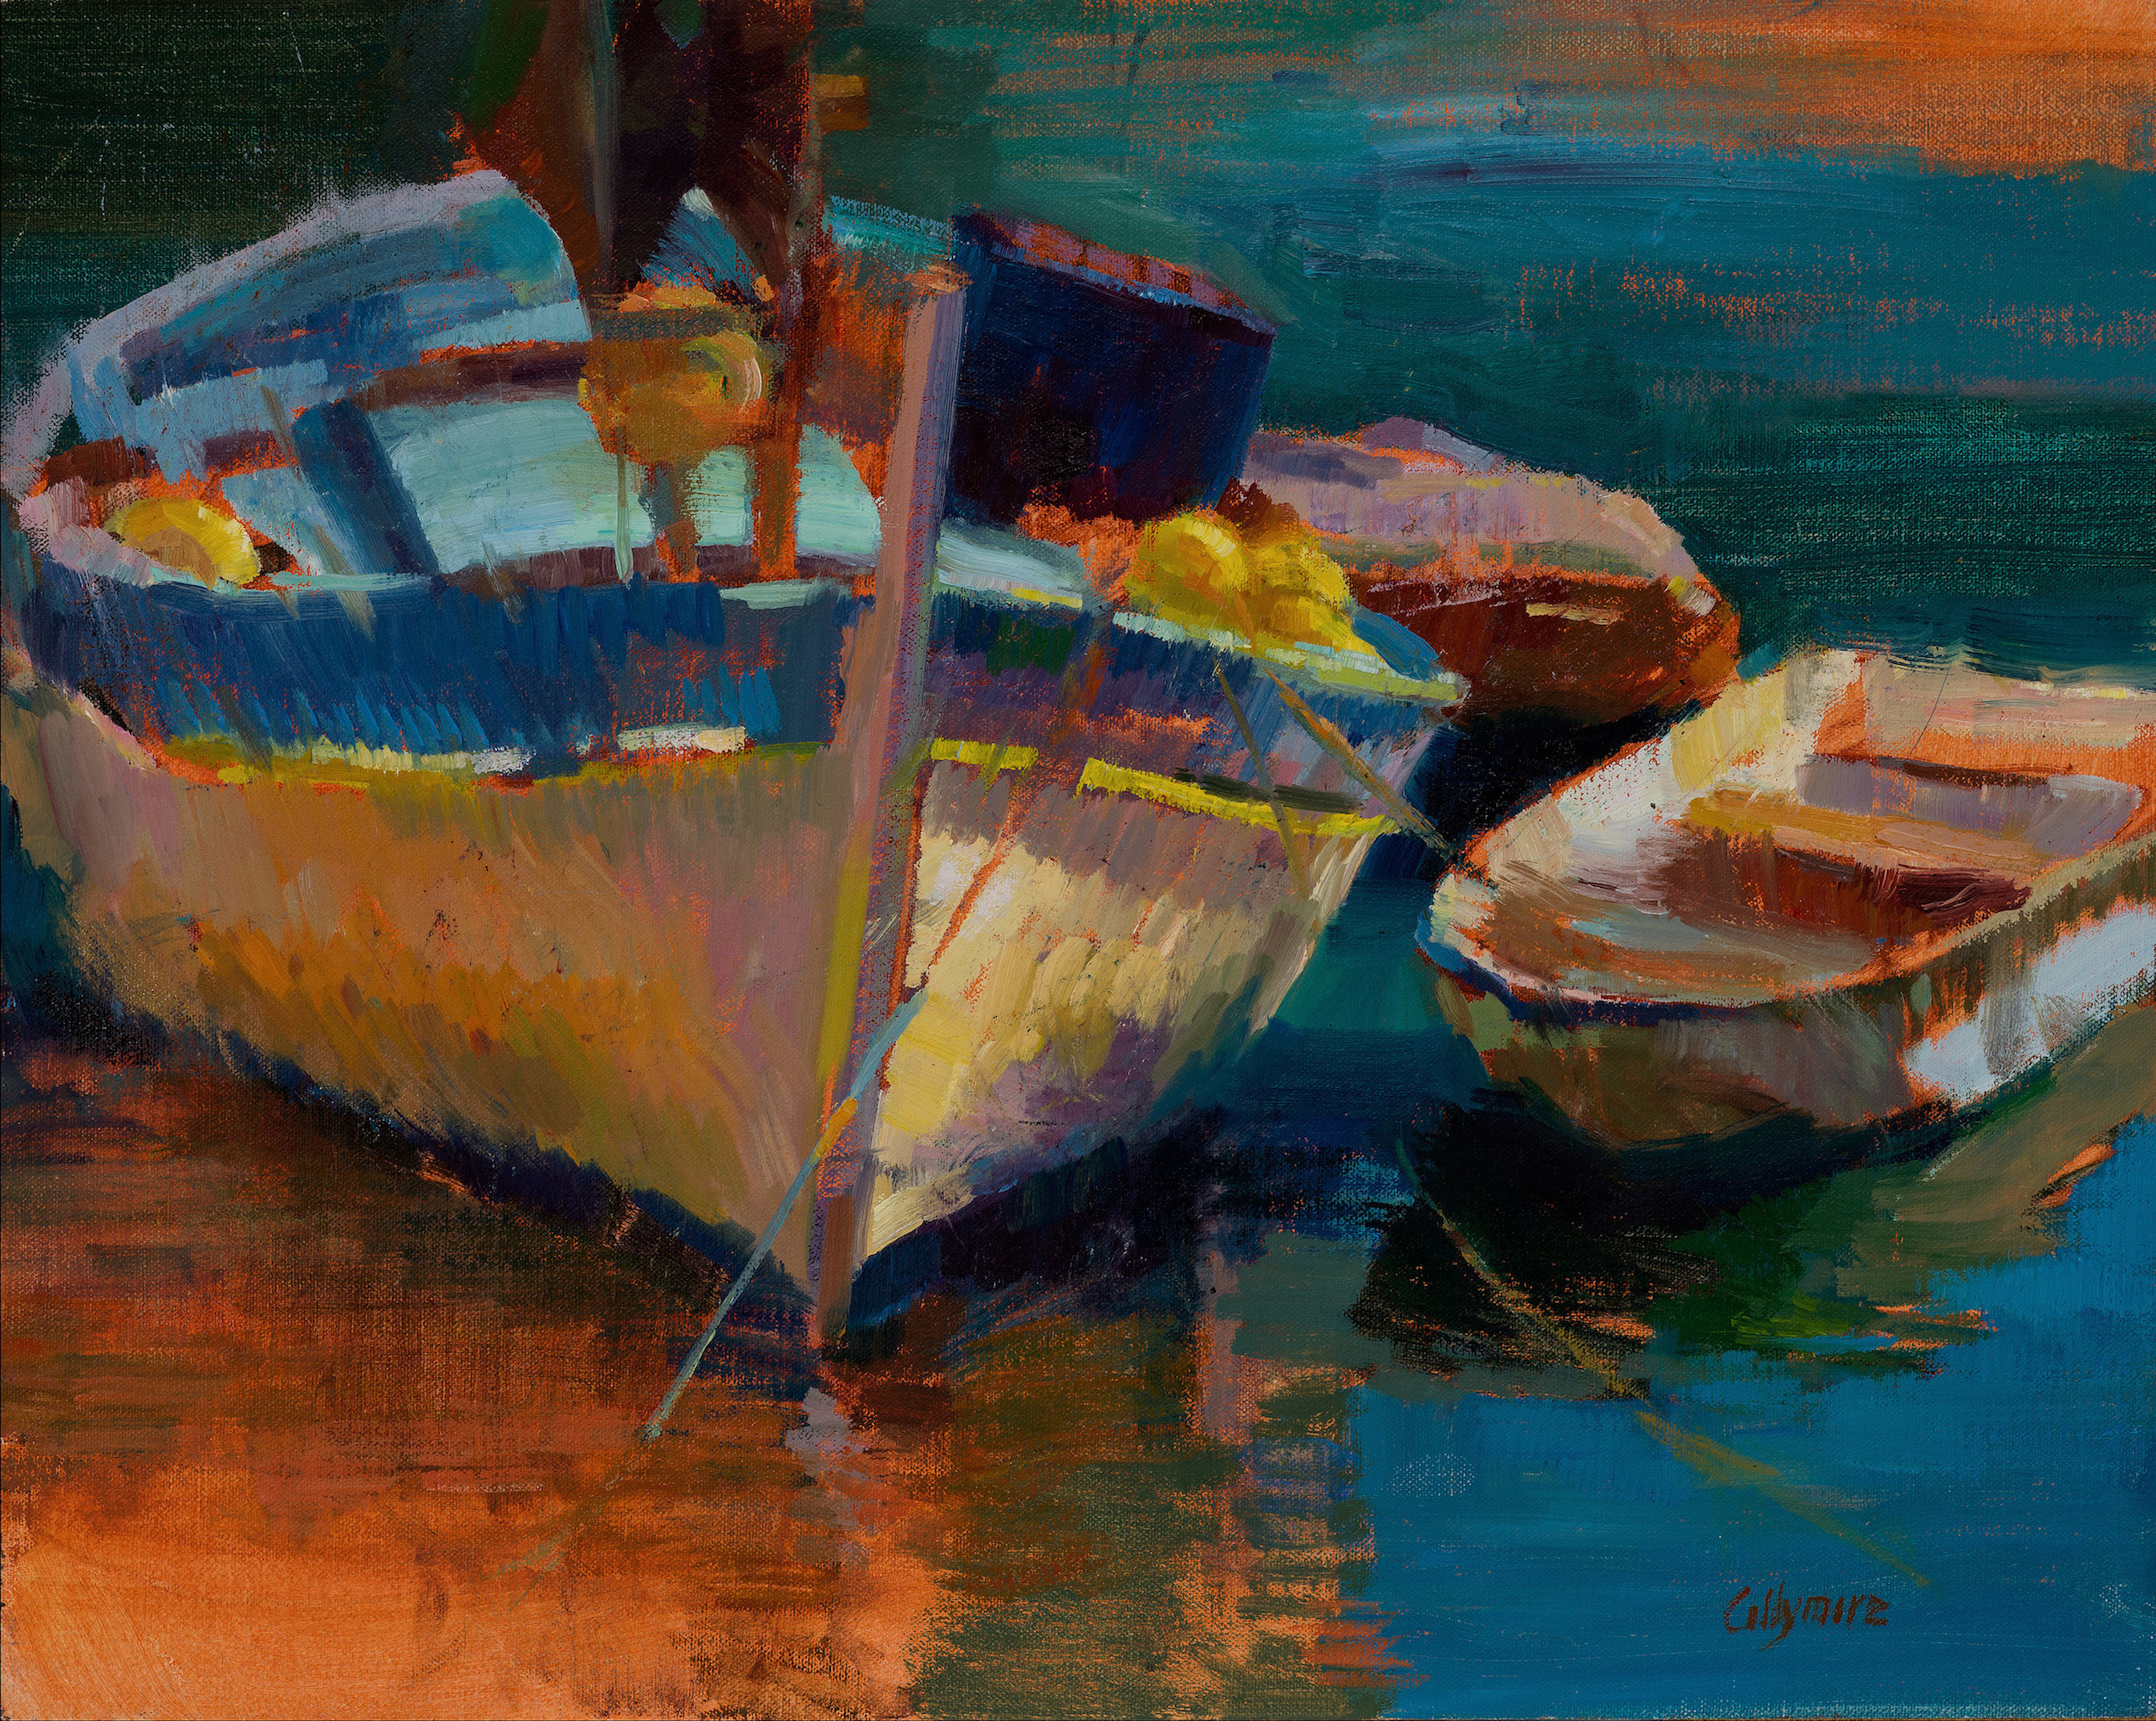 Two Boats in Villefranche-sur-mer   oil on linen  16x20